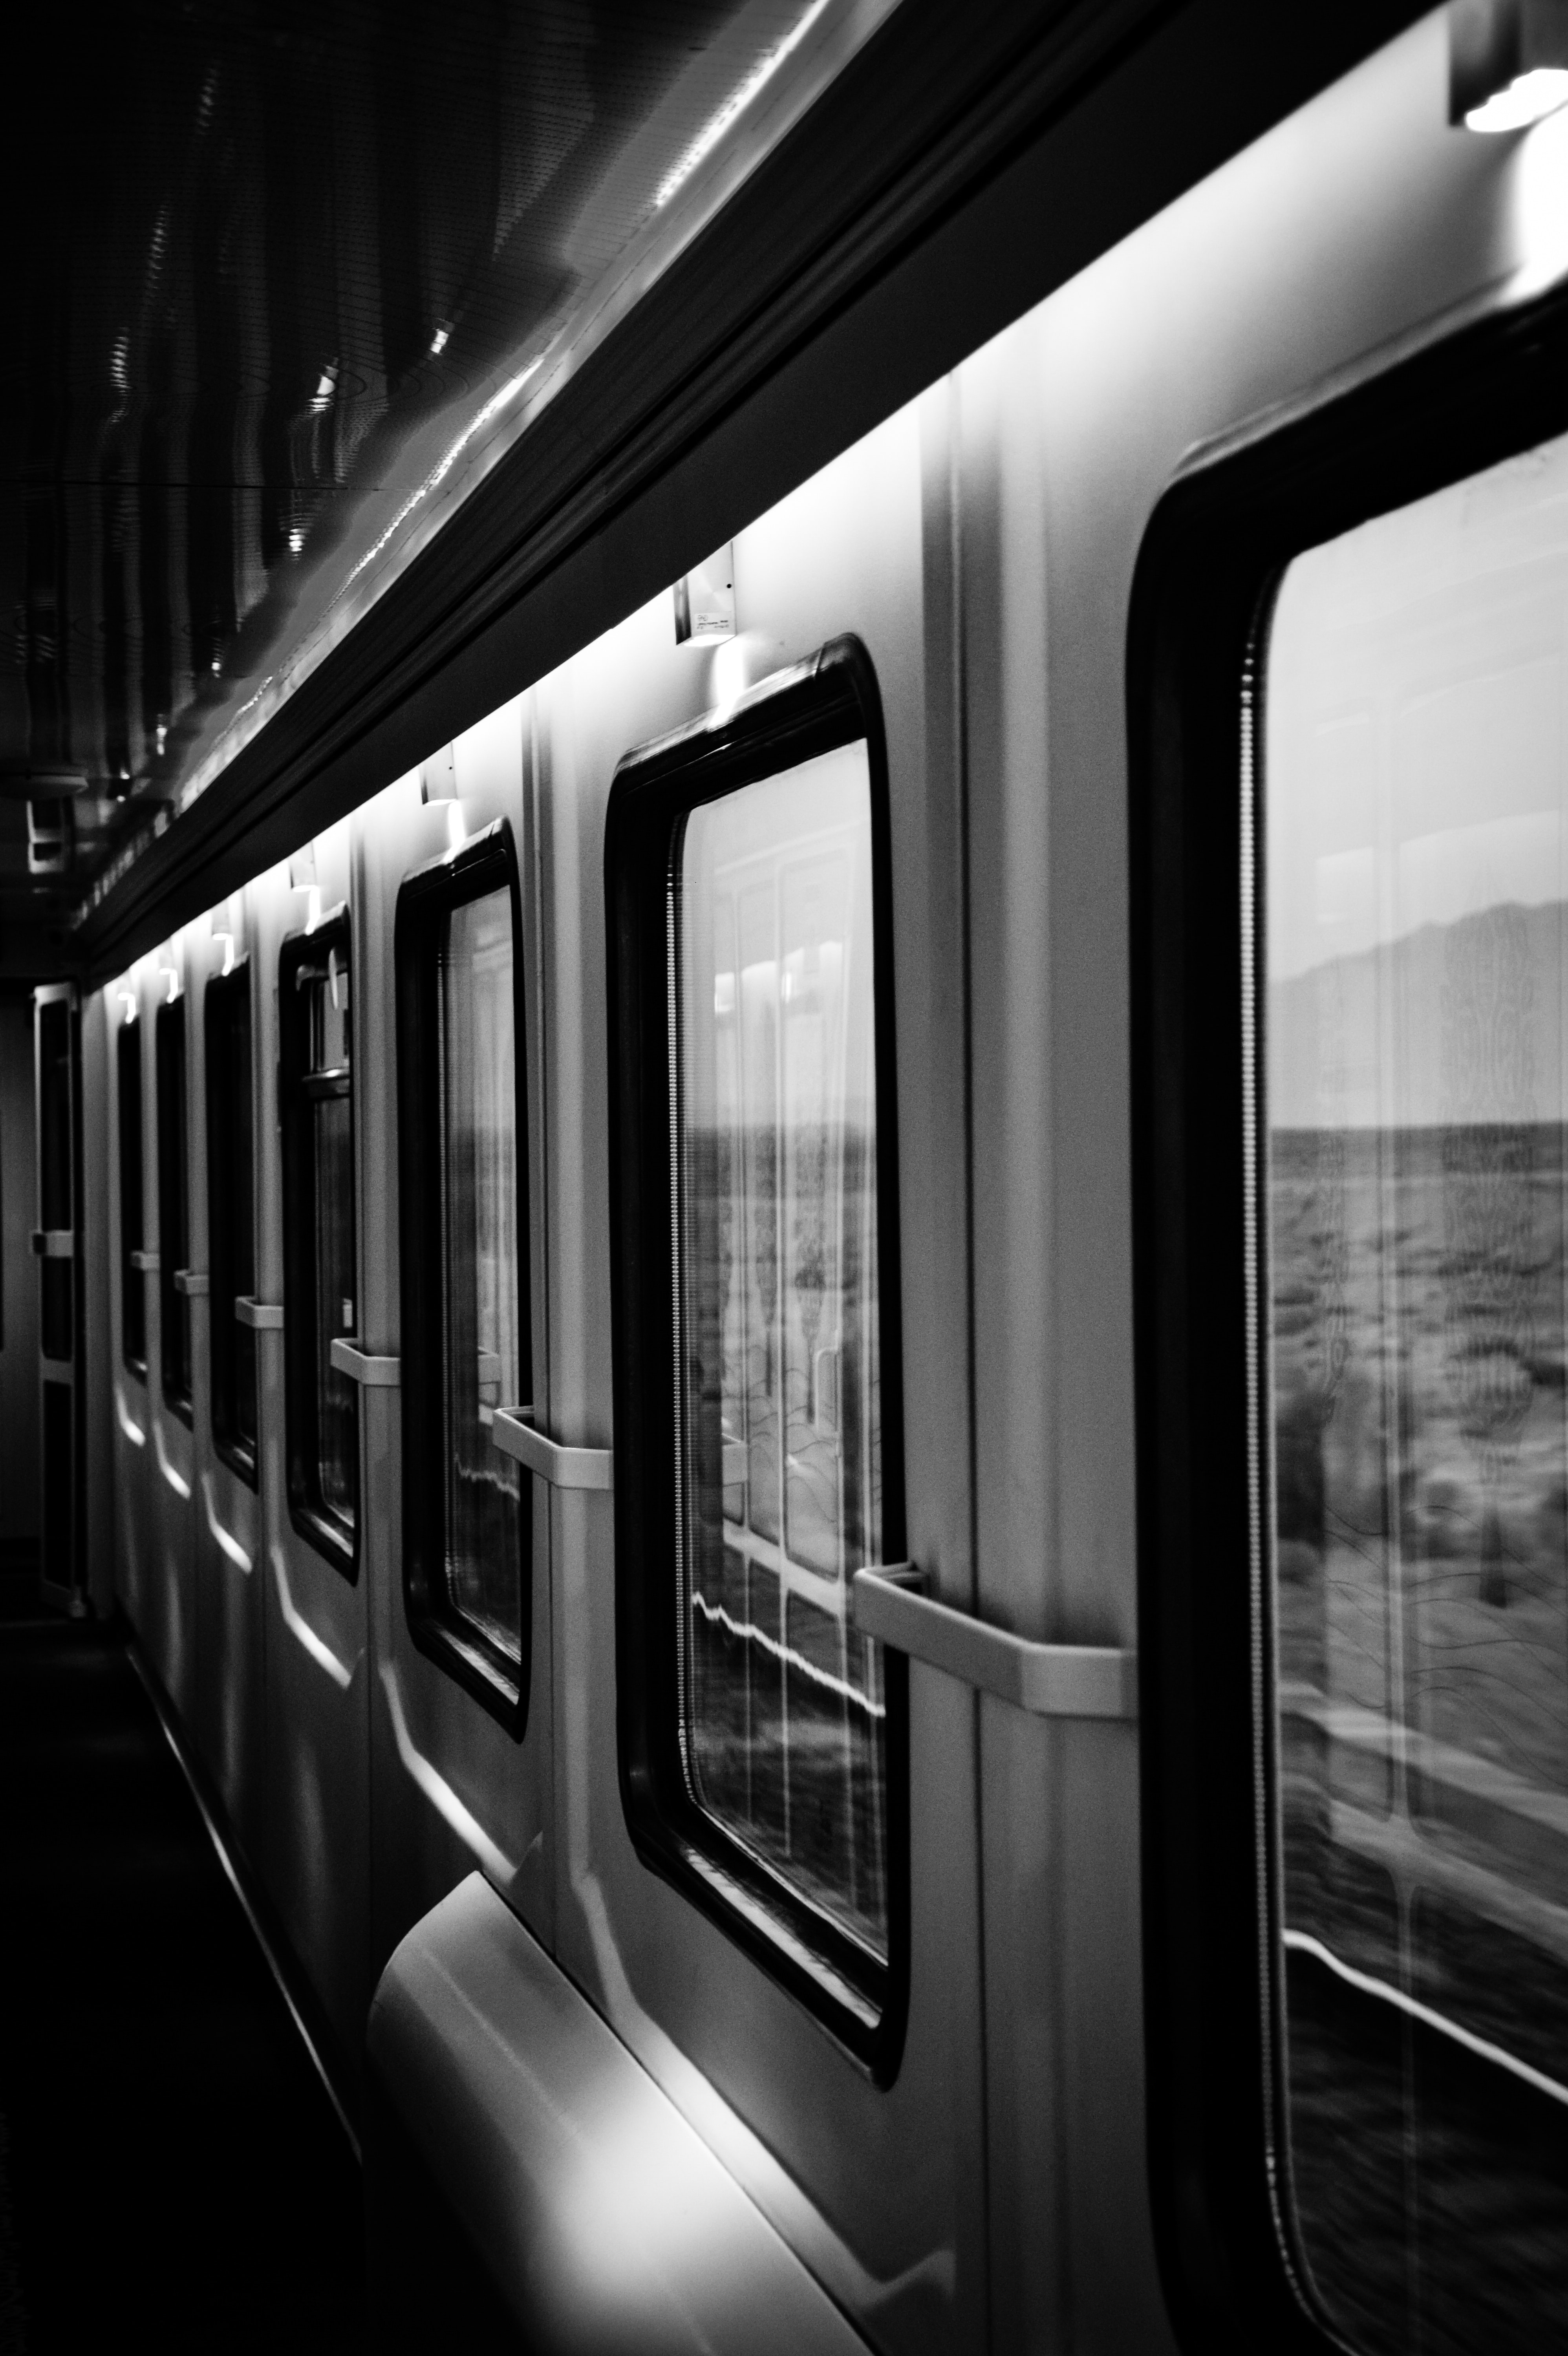 89648 Screensavers and Wallpapers Windows for phone. Download Windows, Miscellanea, Miscellaneous, Grey, Bw, Chb, Train pictures for free